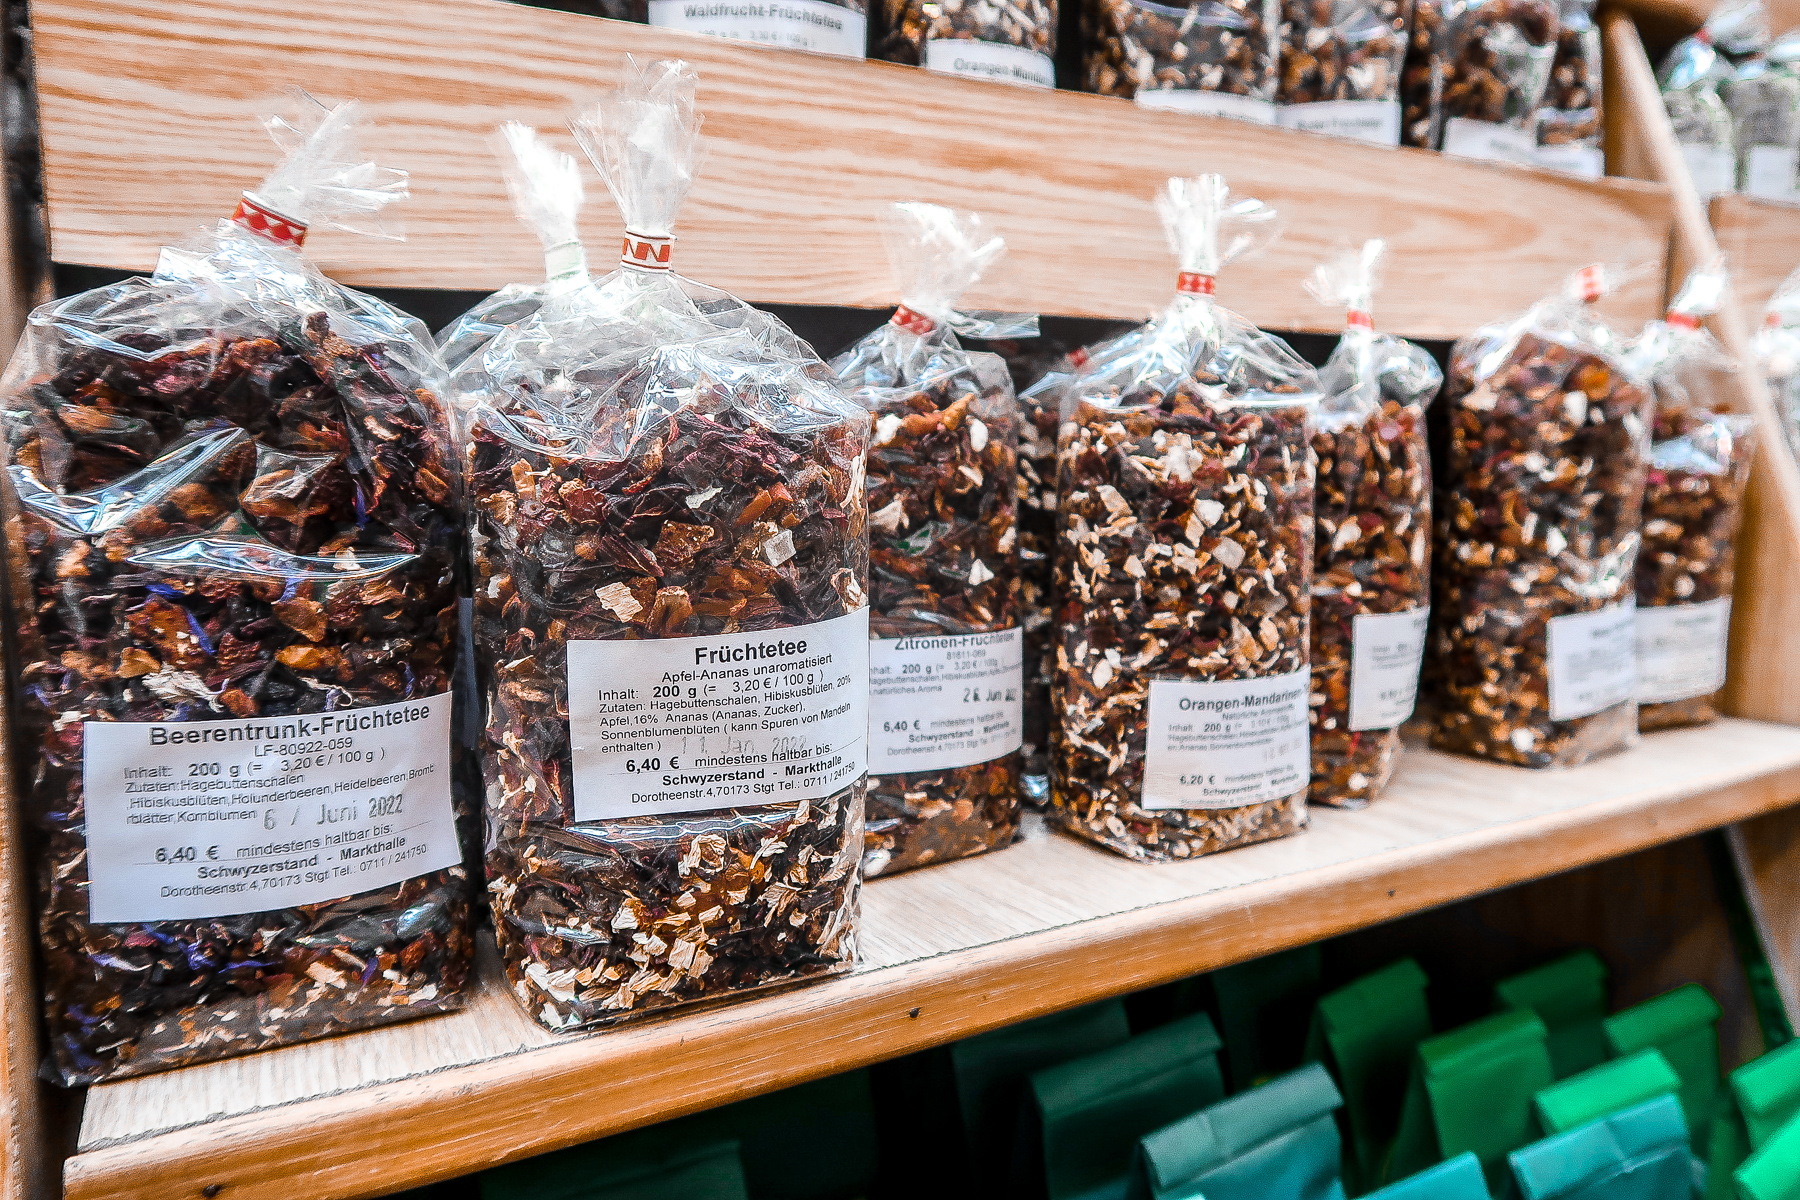 Newport Skinny Tea German Loose Leaf Teas   Covered Market   What to do when visiting Stuttgart for the first time   Germany travel guide   Elle Blonde Luxury Lifestyle Destination Blog